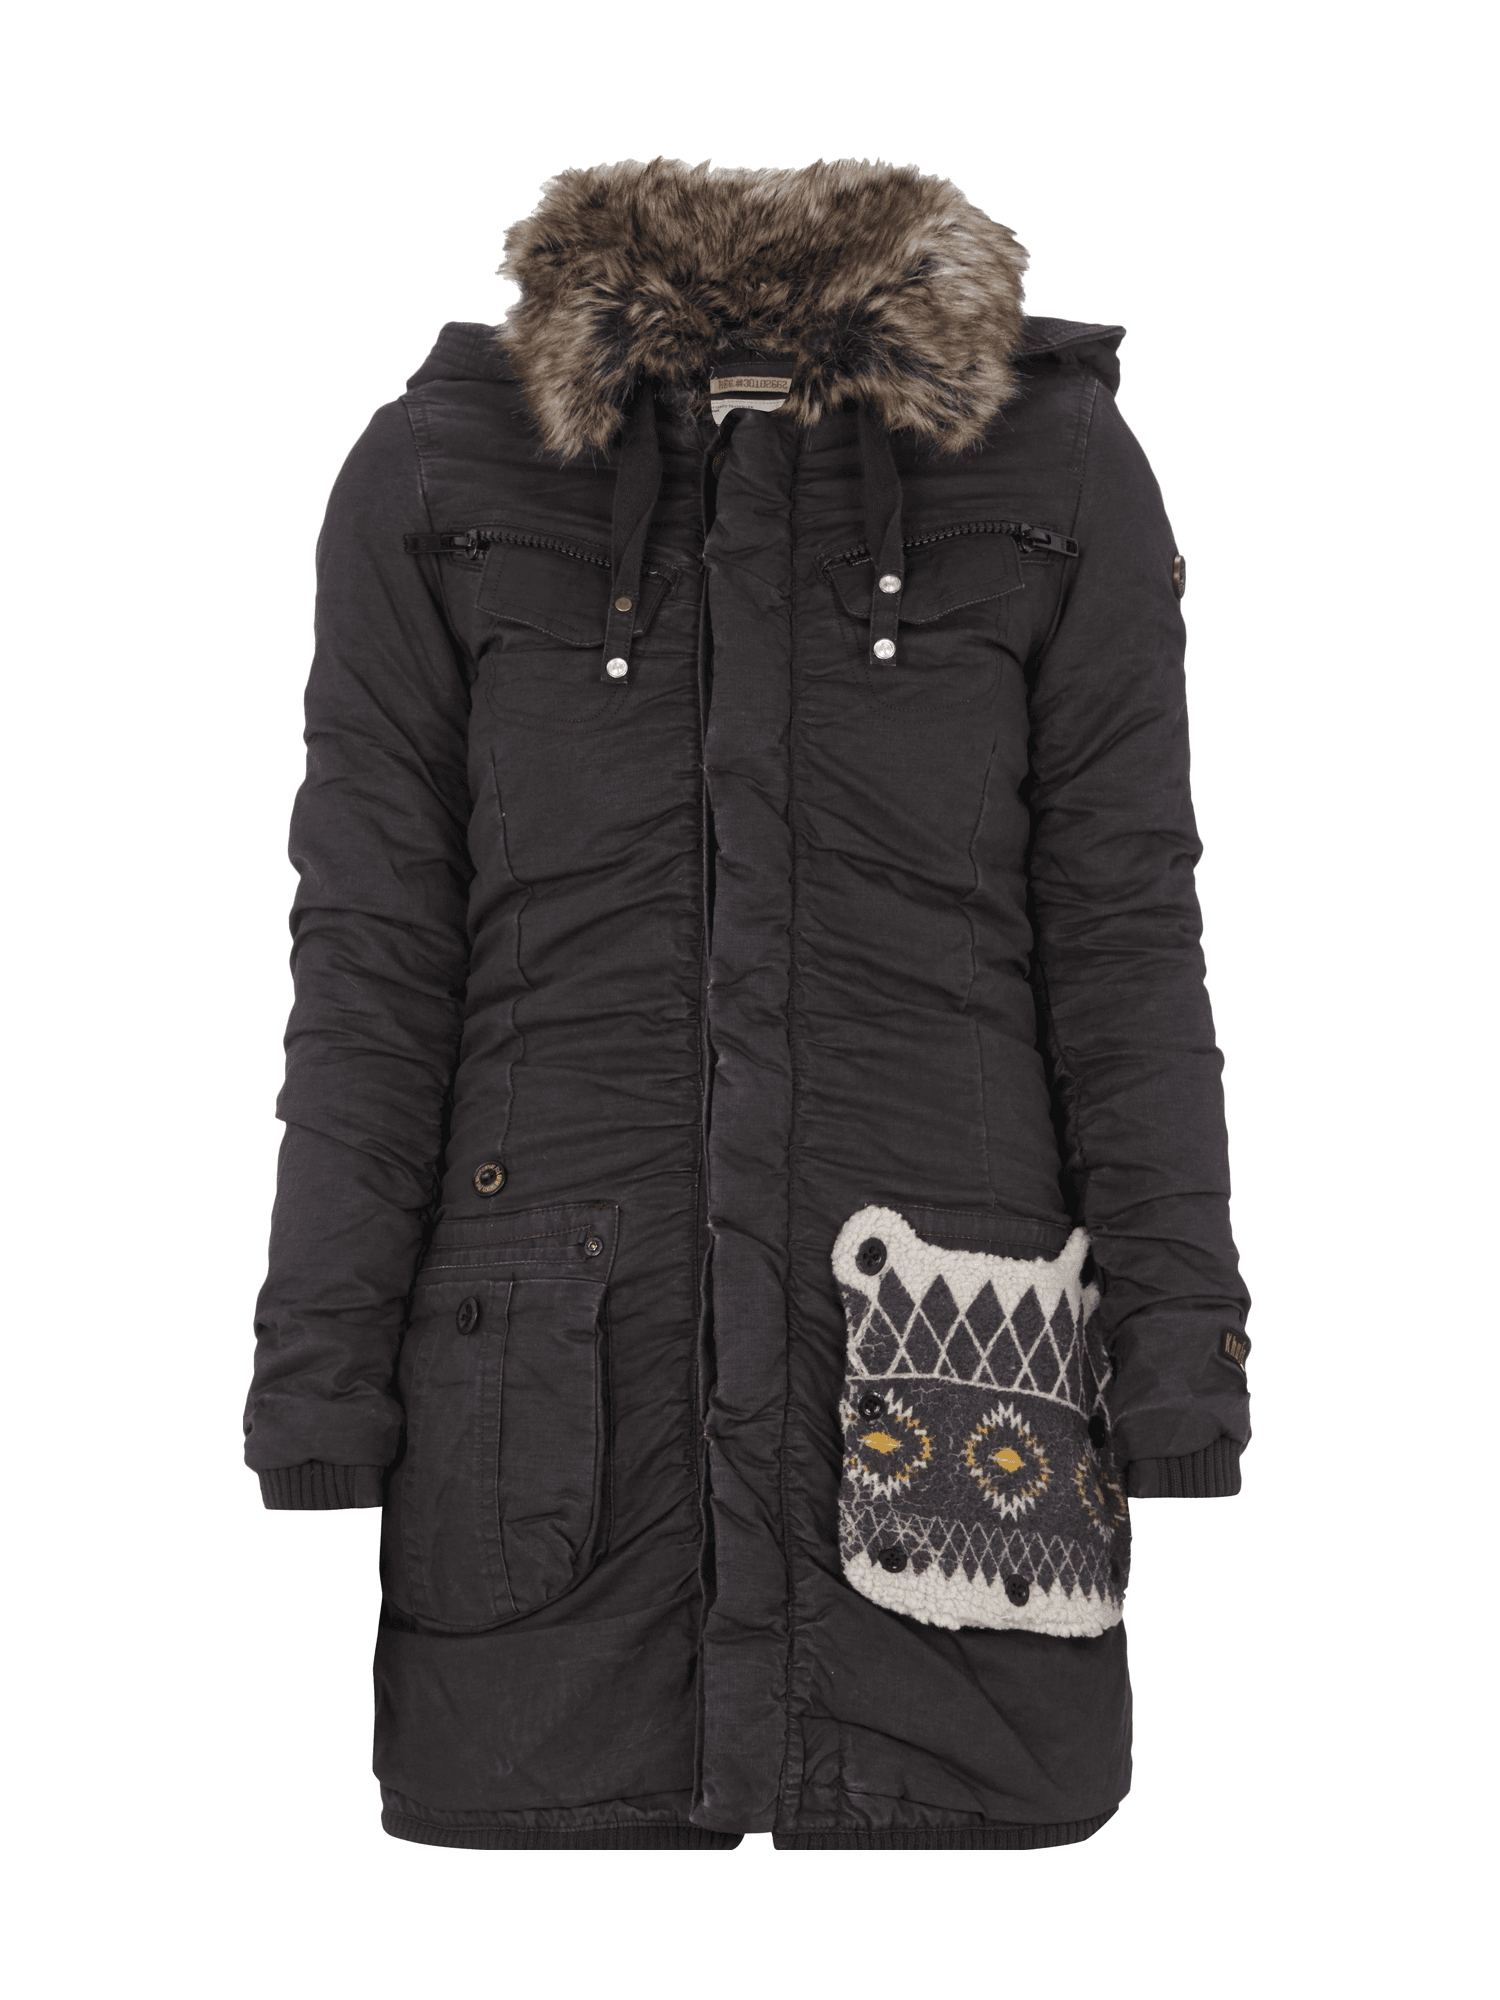 khujo parka mit abnehmbarer kapuze webpelz aus baumwolle winterjacke damen neu ebay. Black Bedroom Furniture Sets. Home Design Ideas